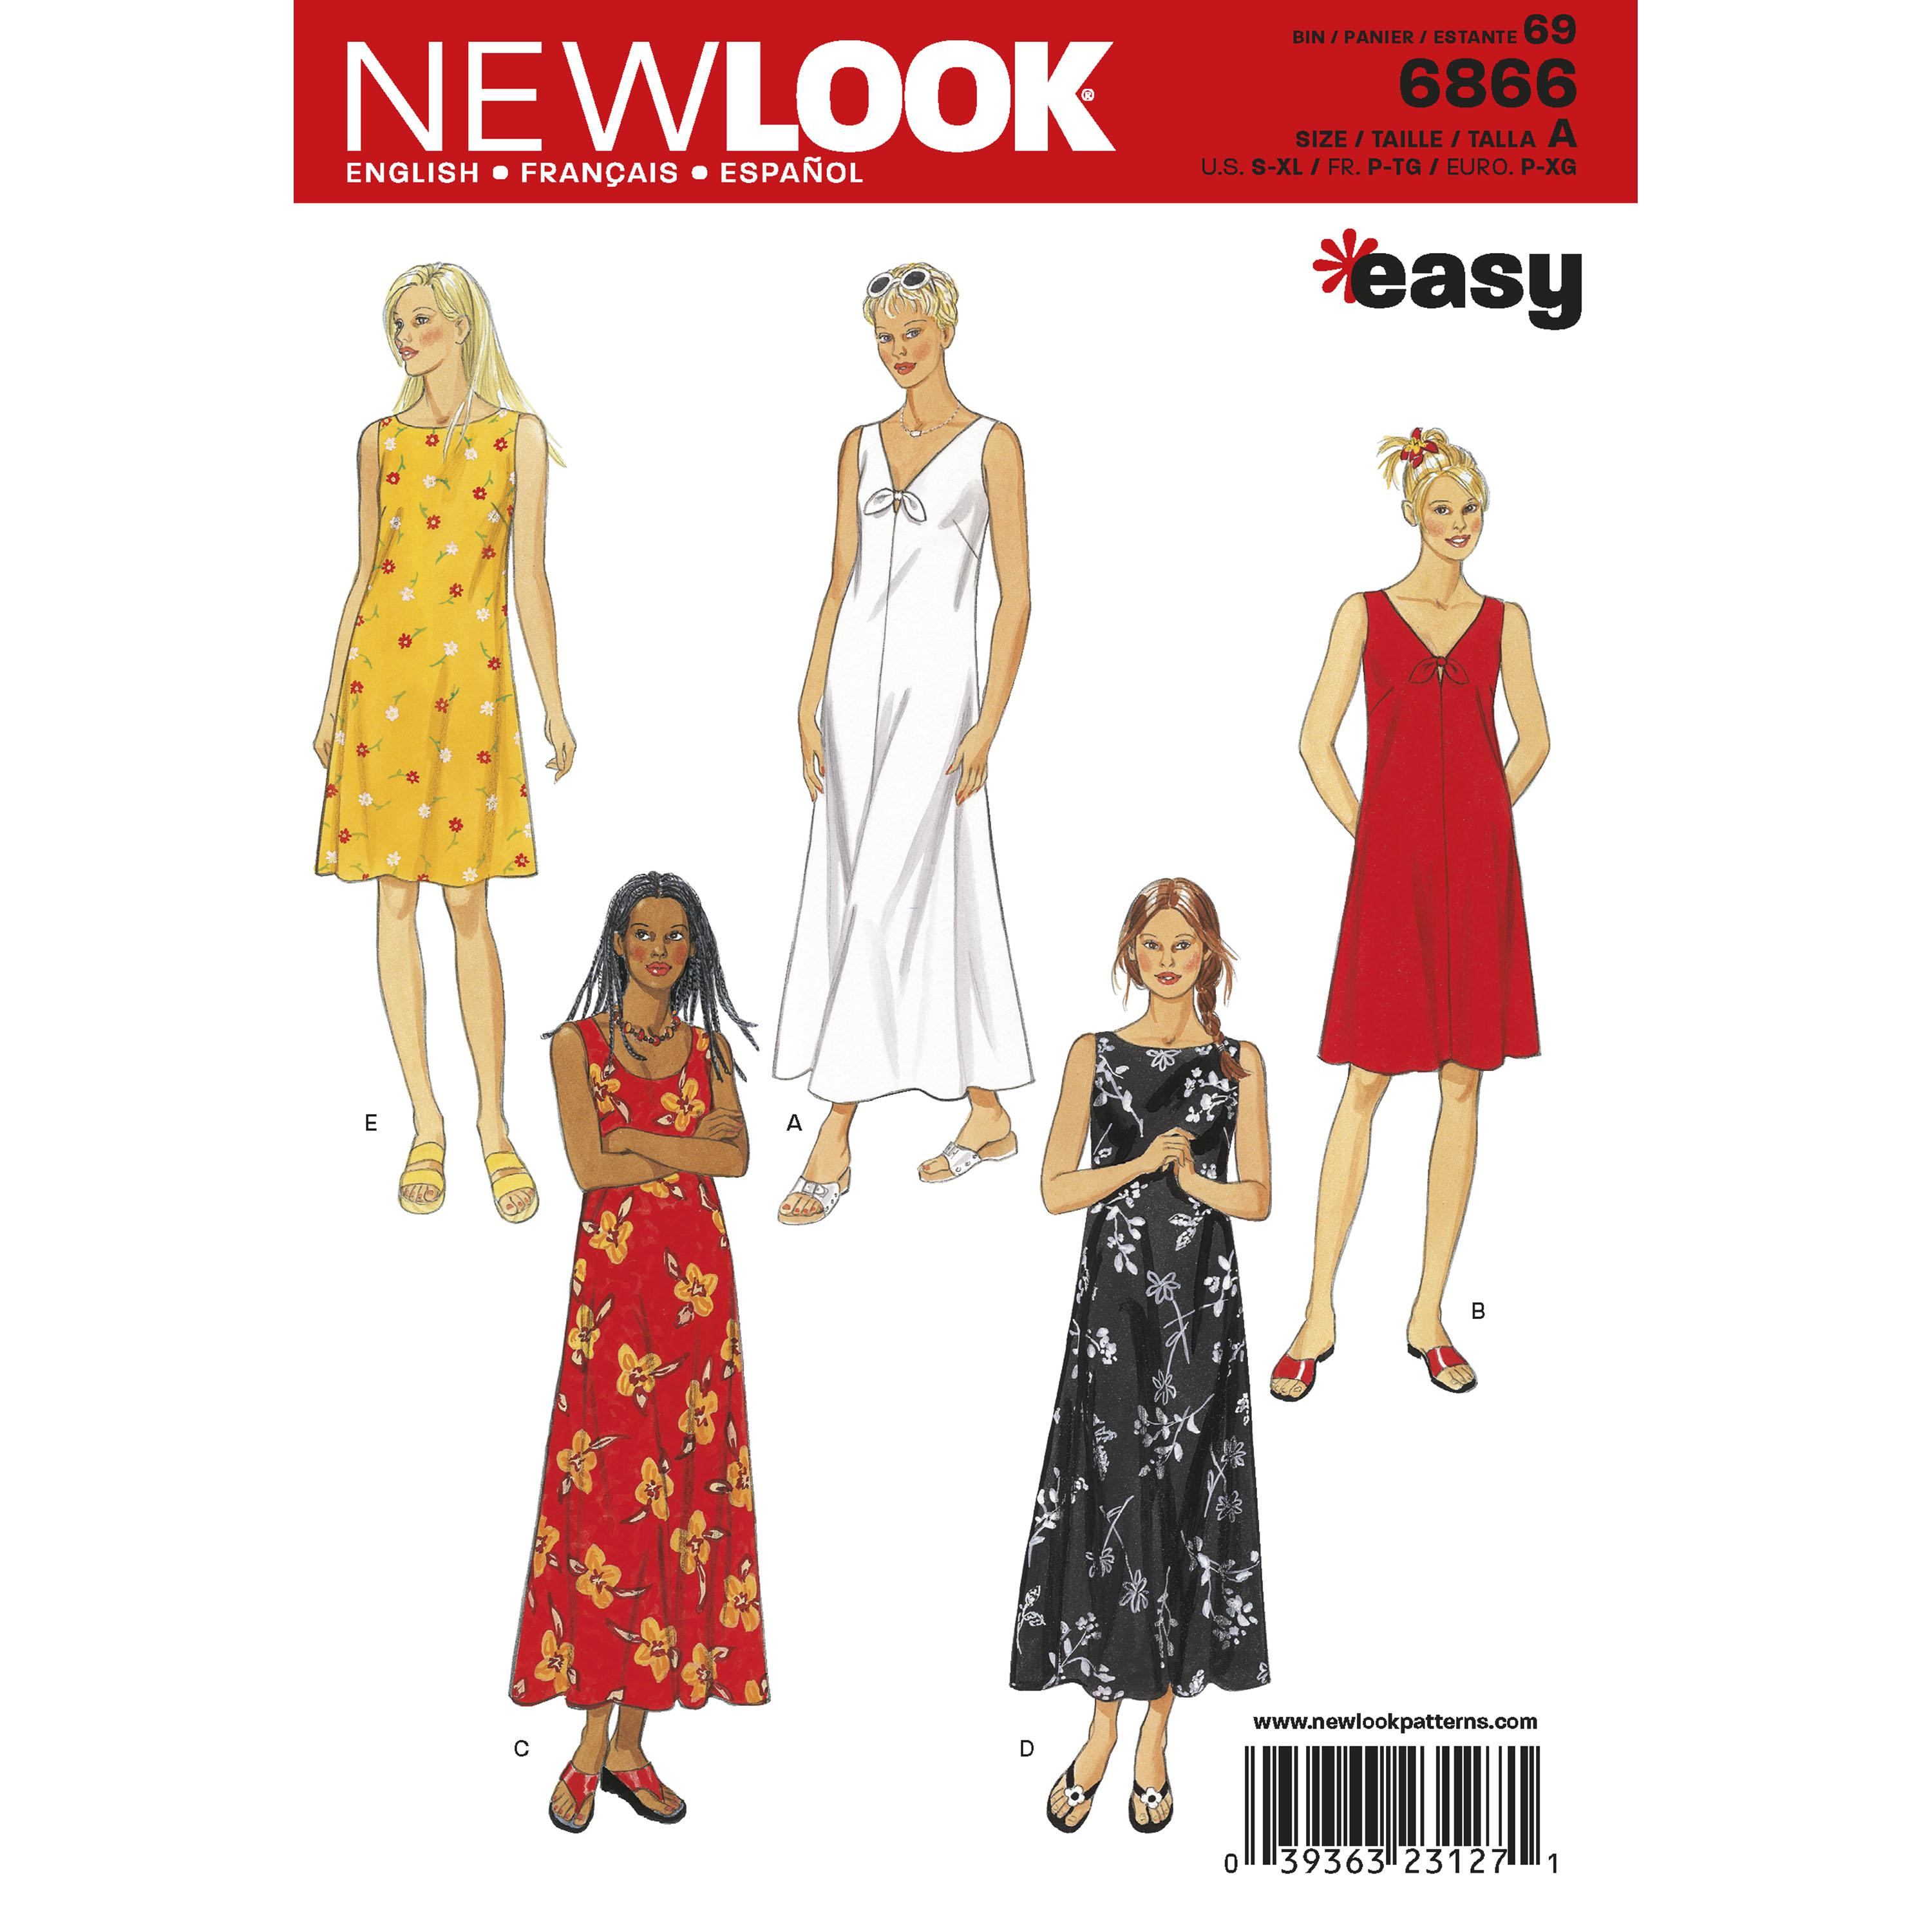 NewLook N6866 Misses Dresses